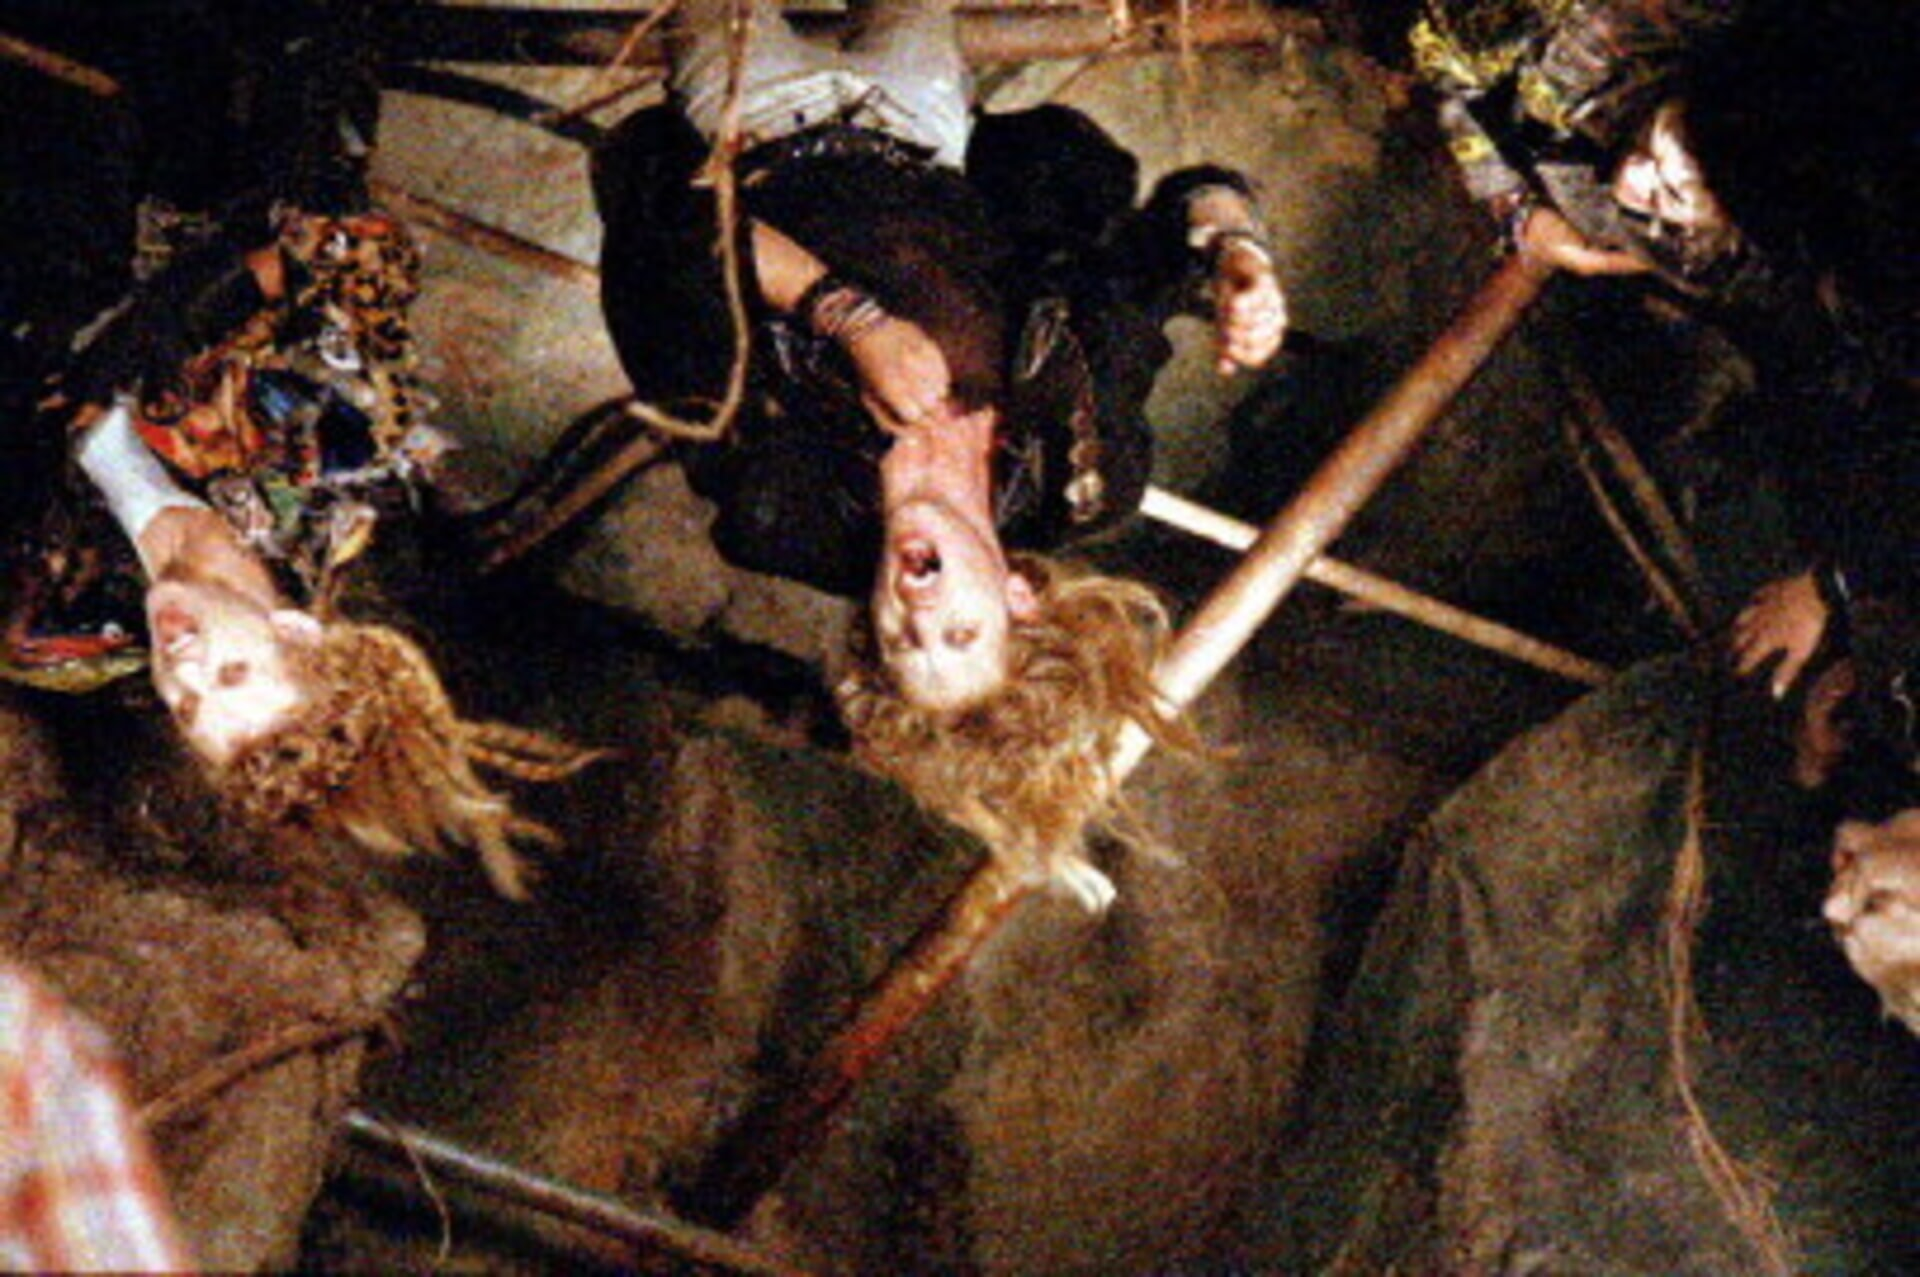 The Lost Boys - Image 3